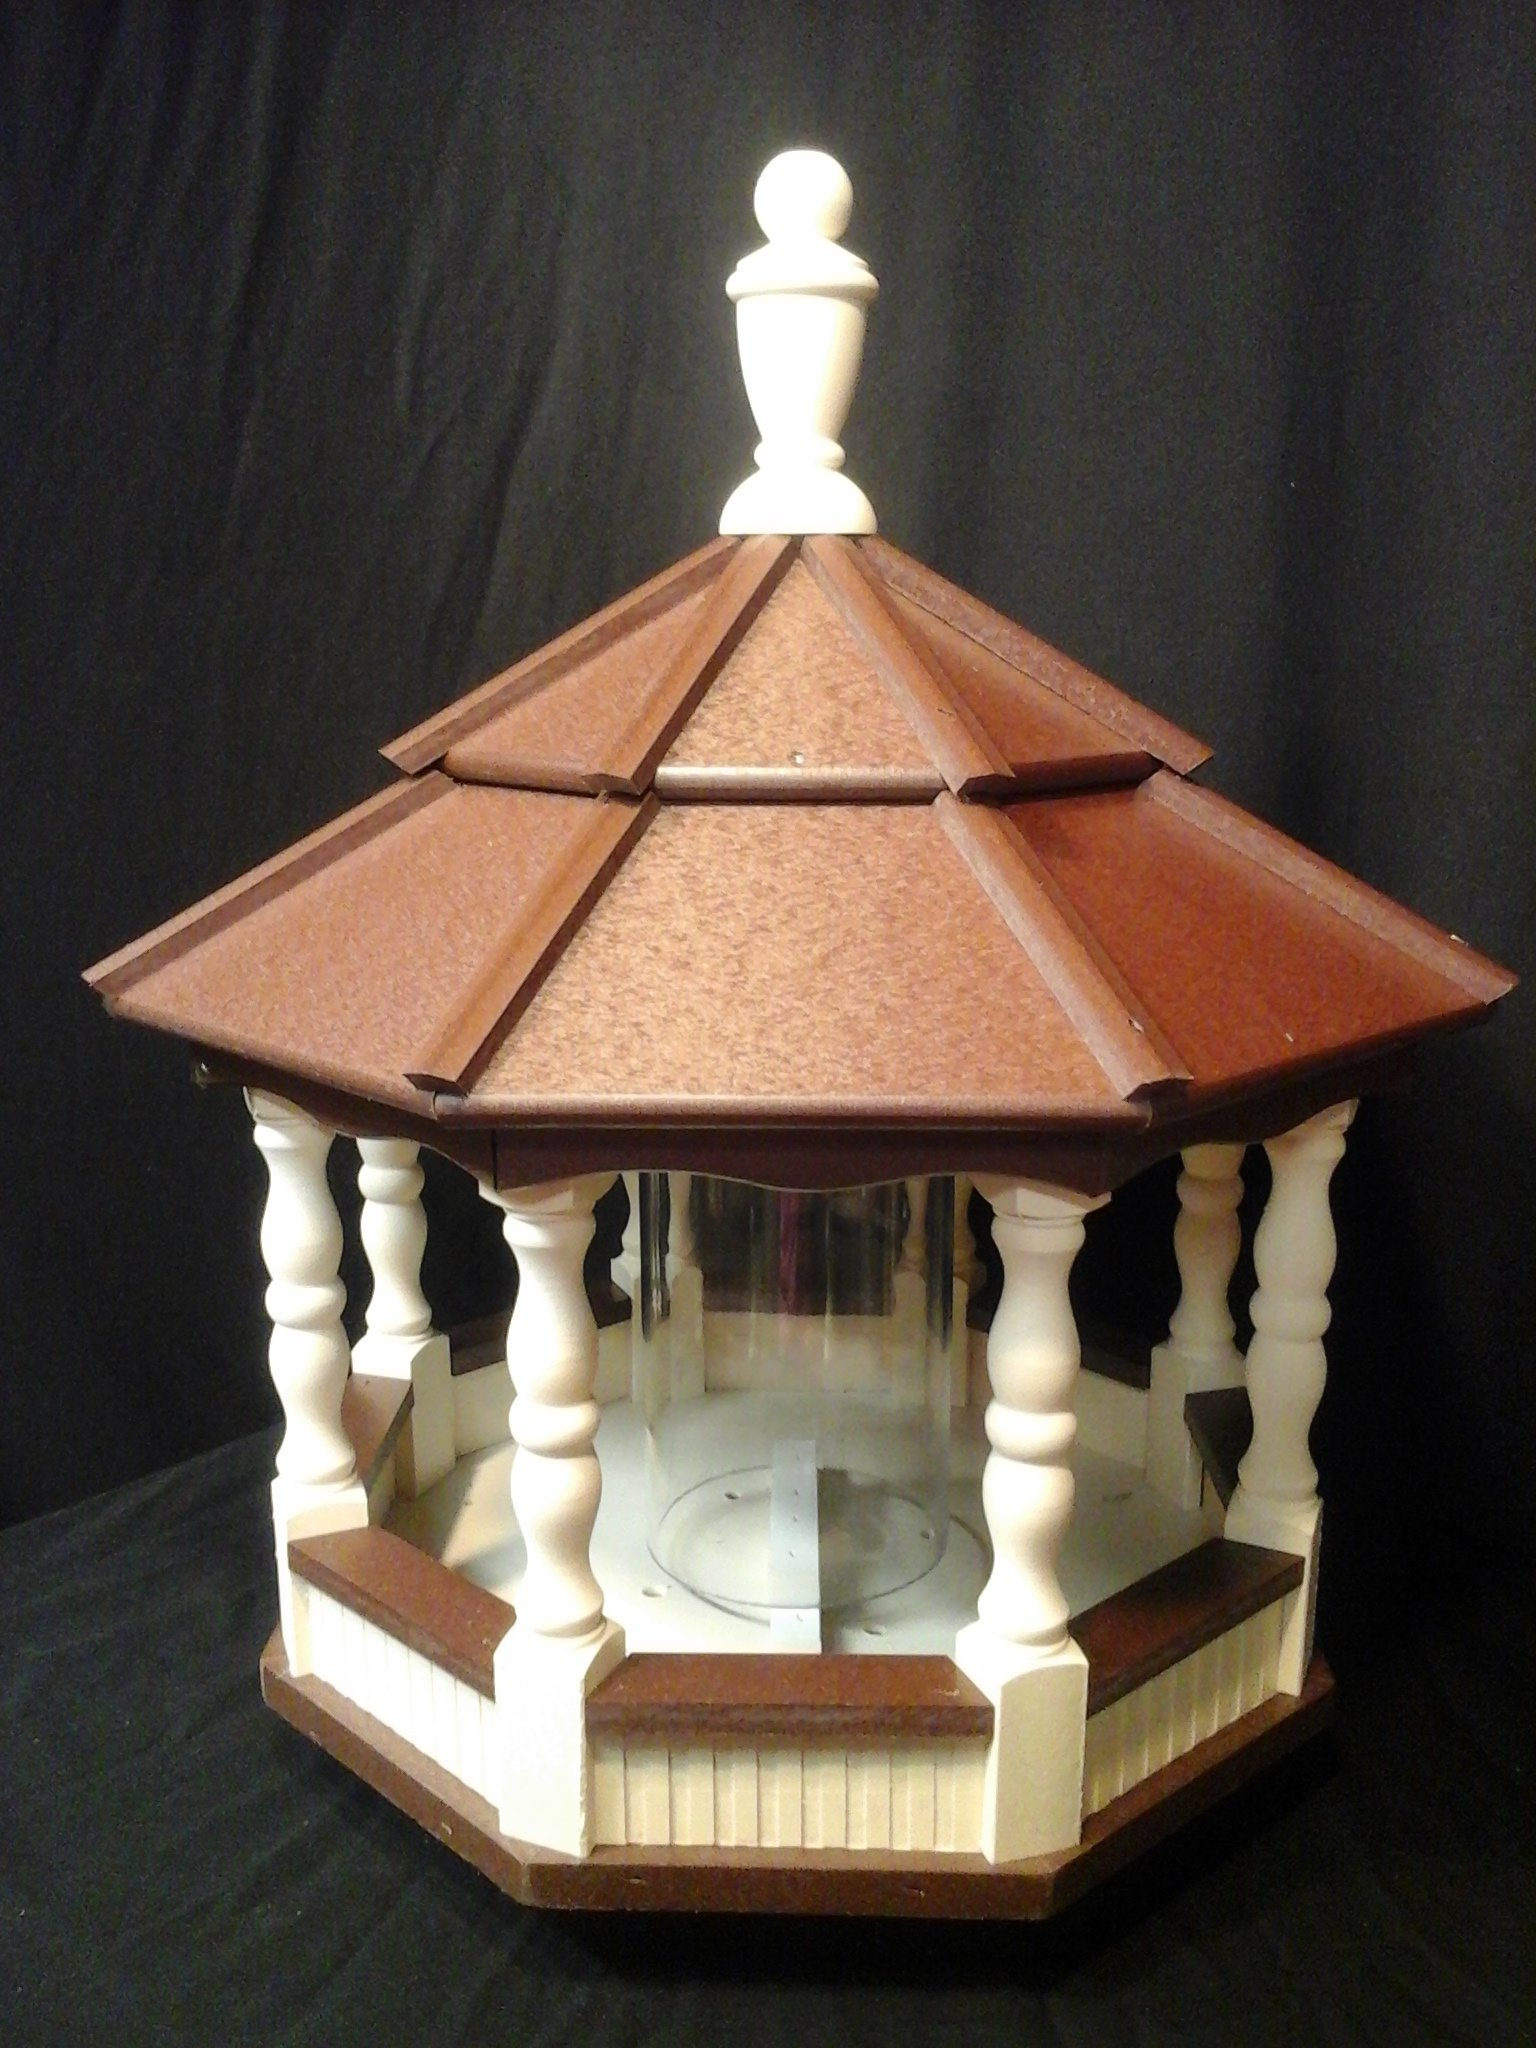 Large Vinyl Spindle Bird Feeder Amish Homemade Handmade Handcrafted Ivory & Brown Roof